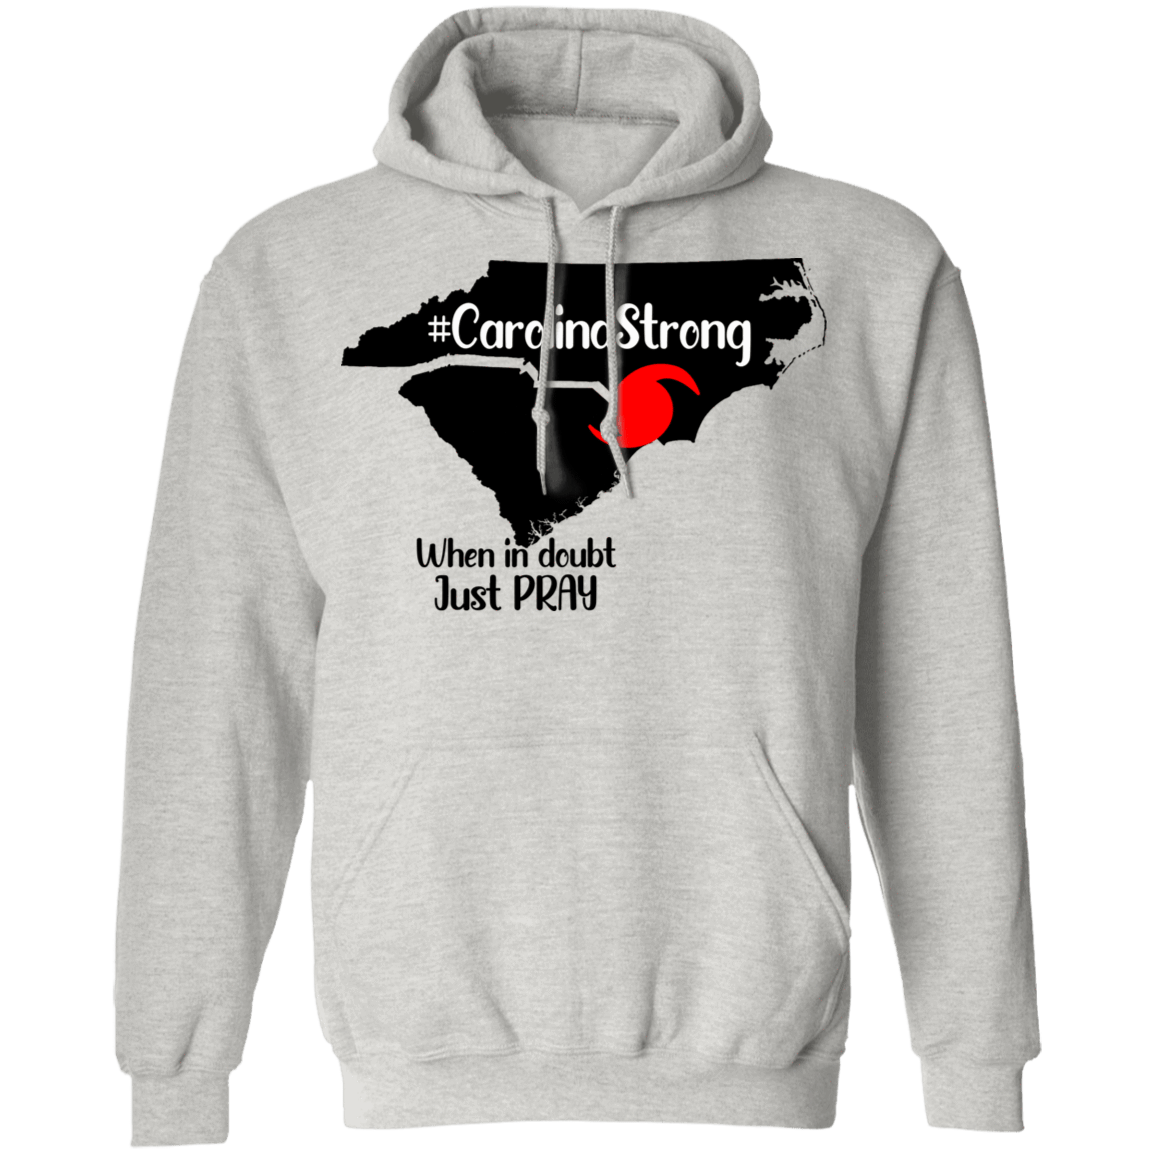 Carolina Strong When In Doubt Just Pray T-Shirts, Hoodies, Tank 541-4748-79579571-23071 - Tee Ript